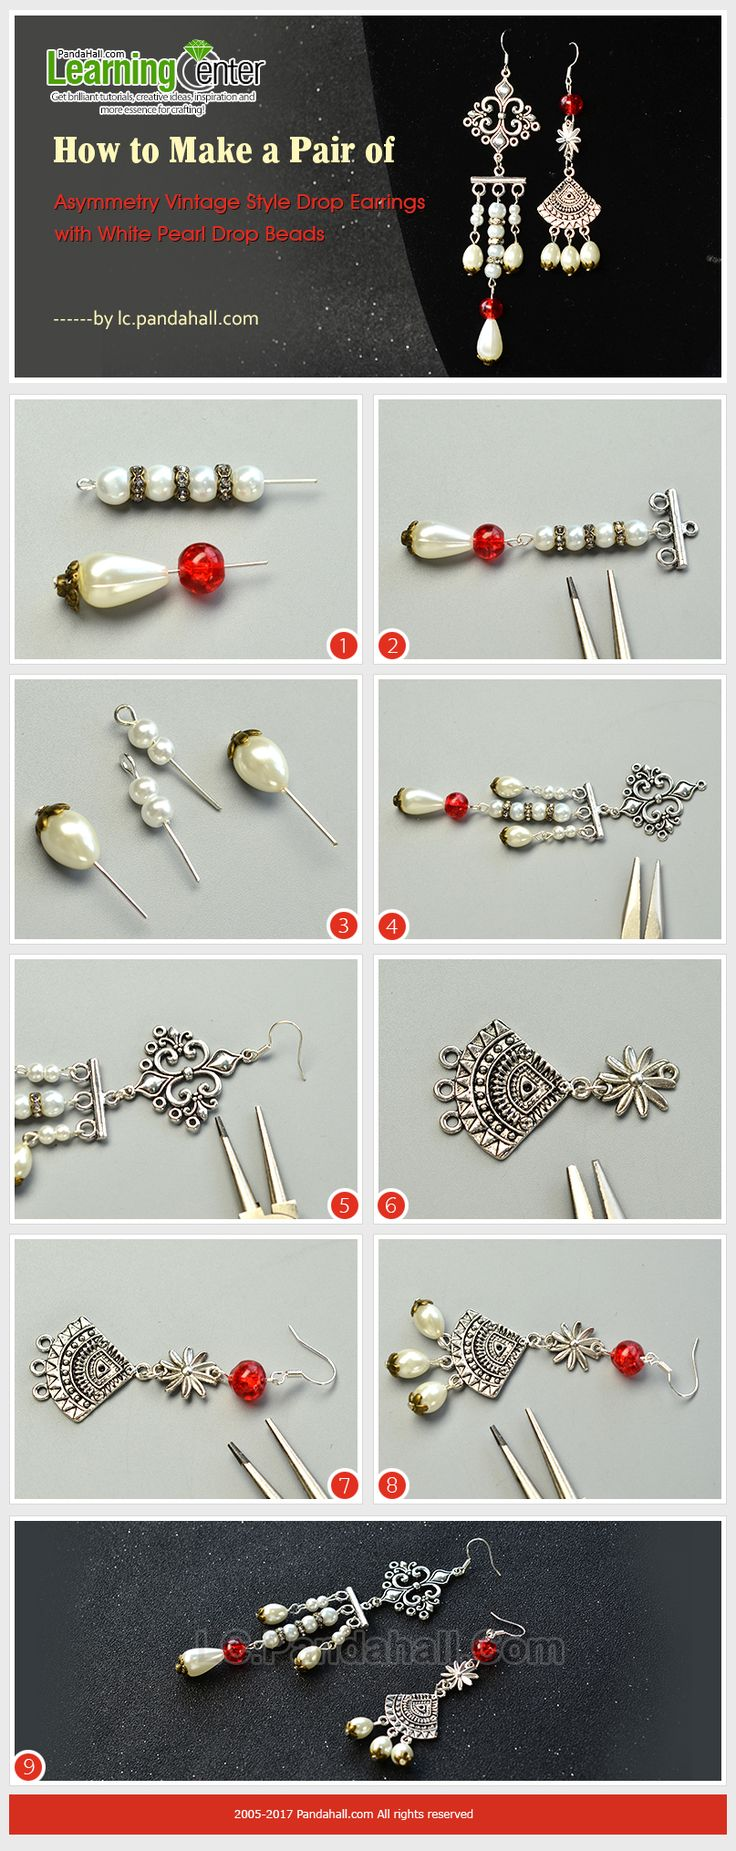 1180 best jewelry images on Pinterest | Jewellery making, Arm ...